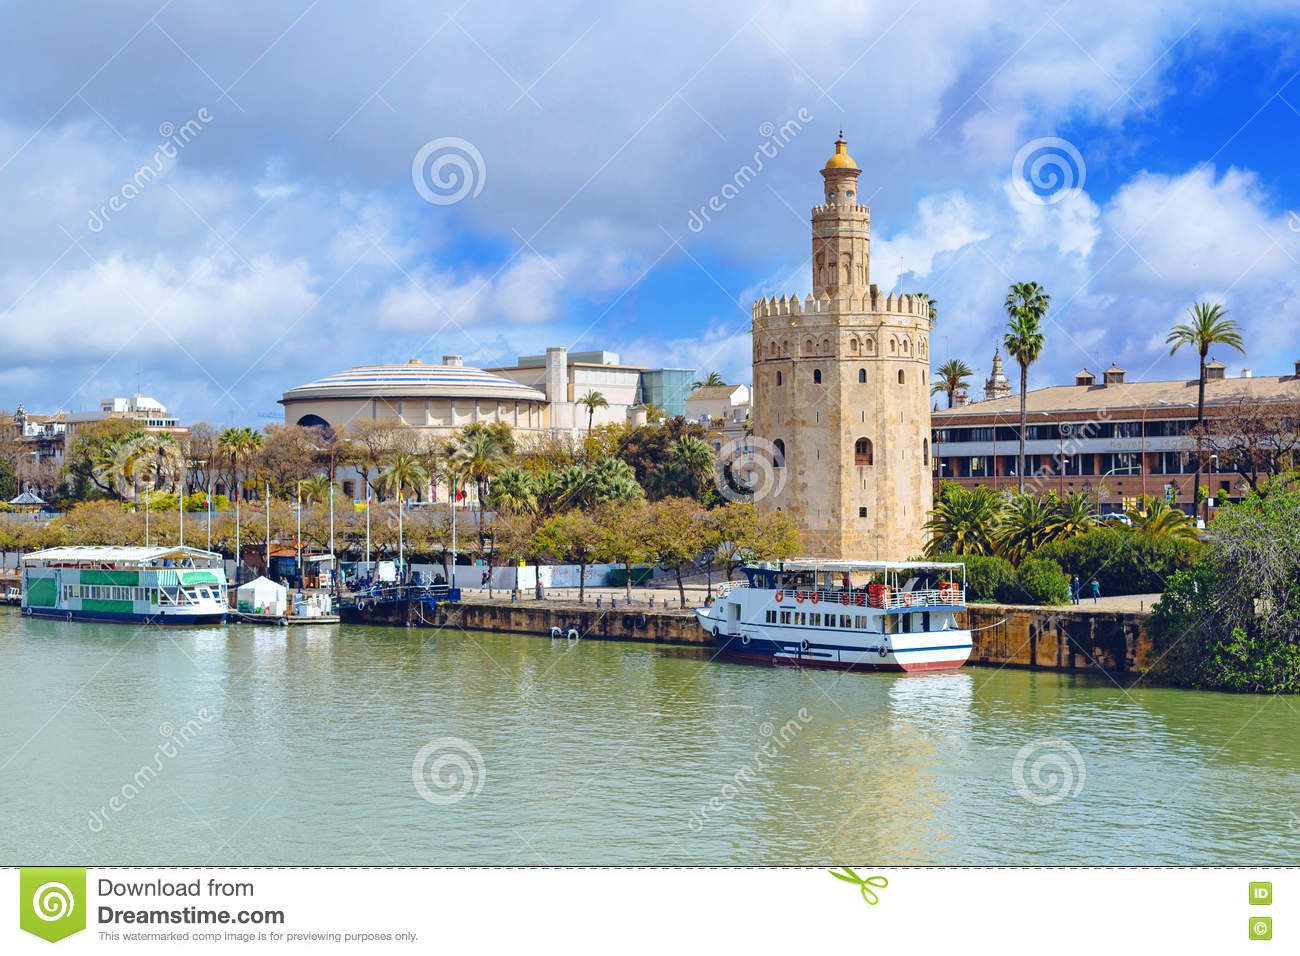 Golden tower along the Guadalquivir river in Seville, Andalusia, Spain, Europe